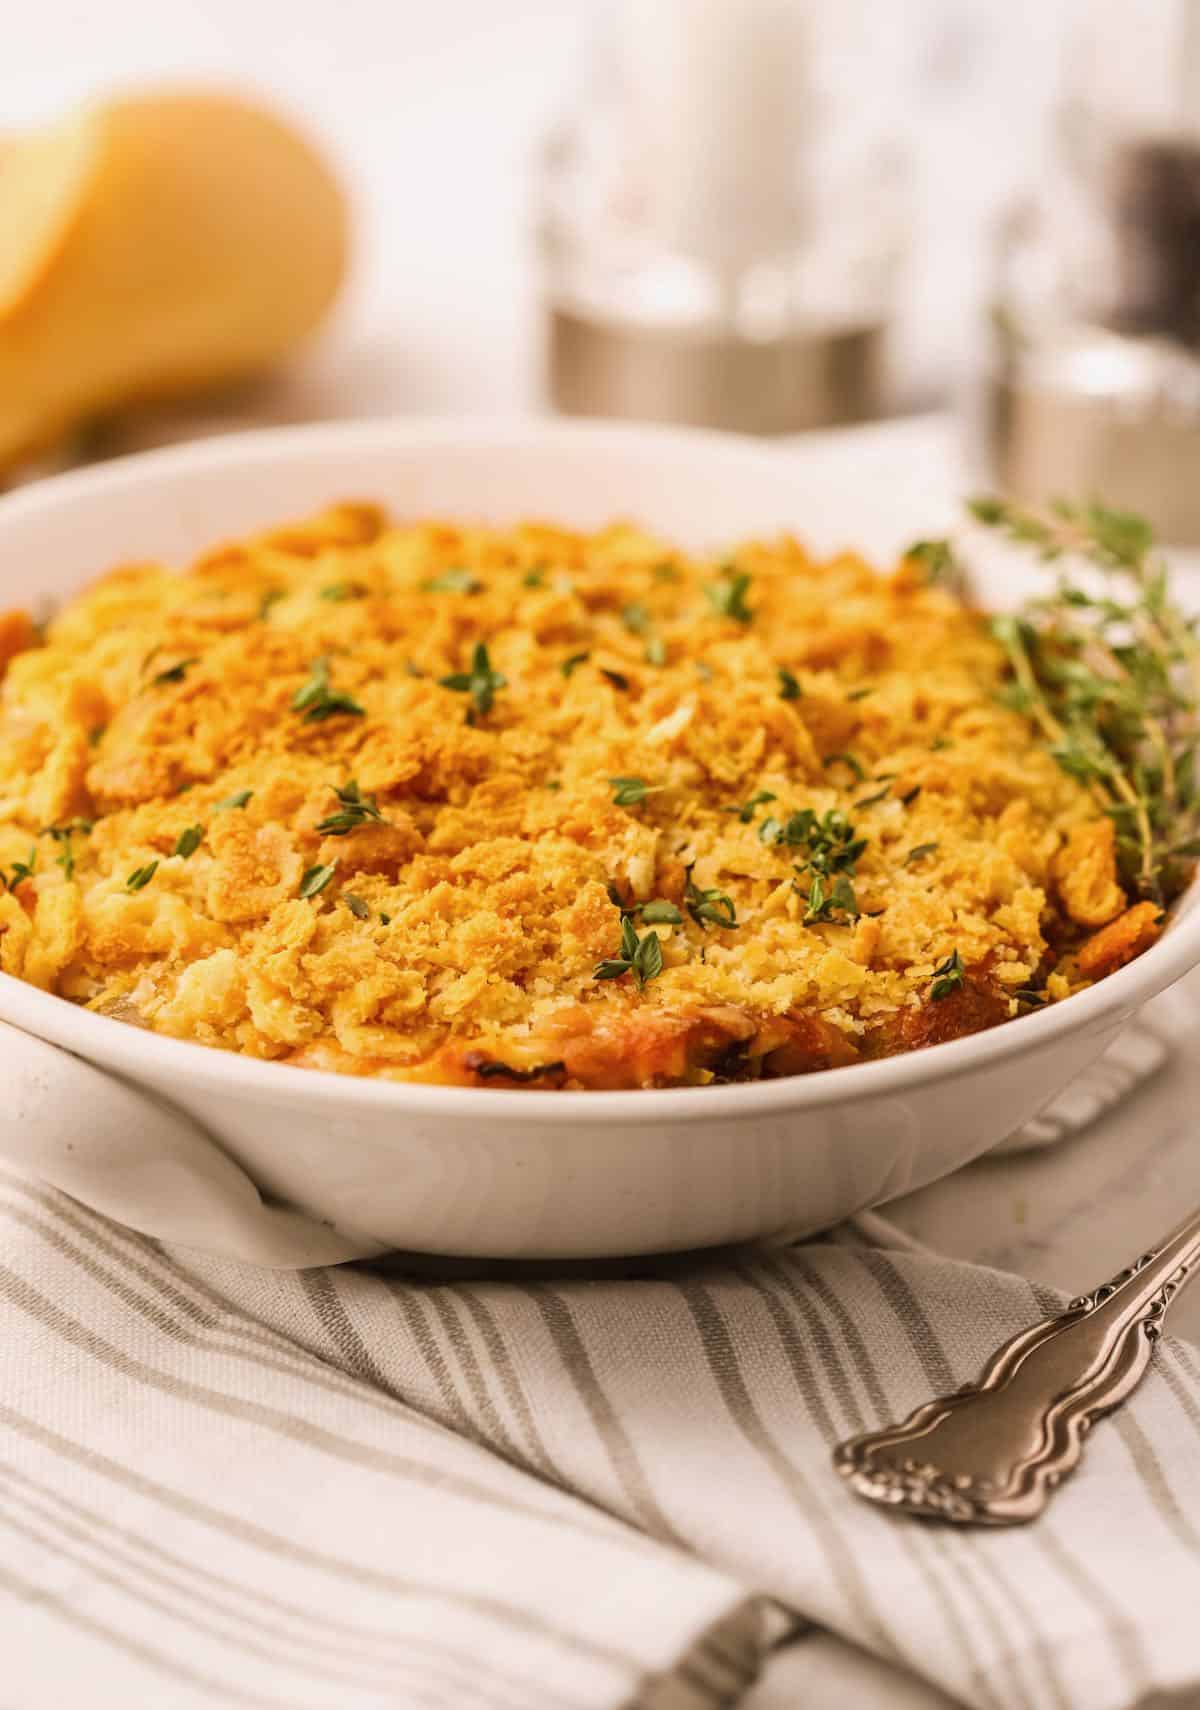 Onion casserole in a white baking dish garnished with thyme leaves.